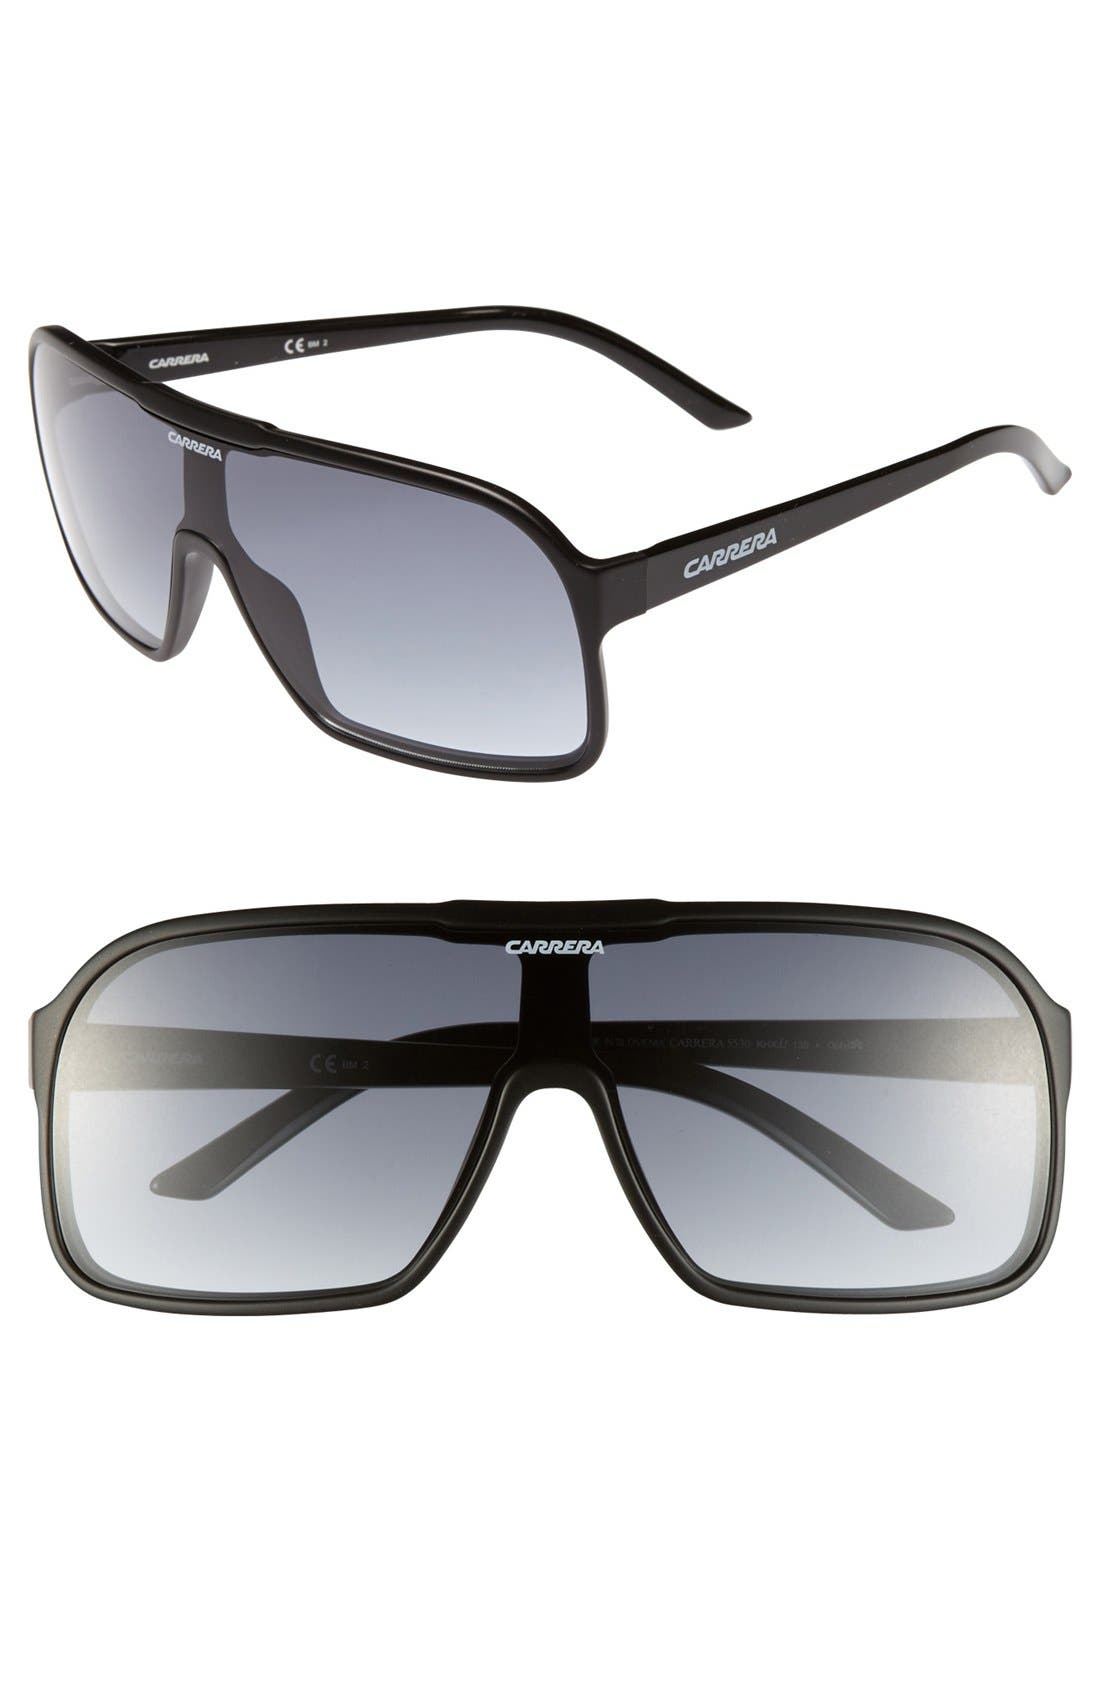 Main Image - Carrera Eyewear 99mm Aviator Sunglasses